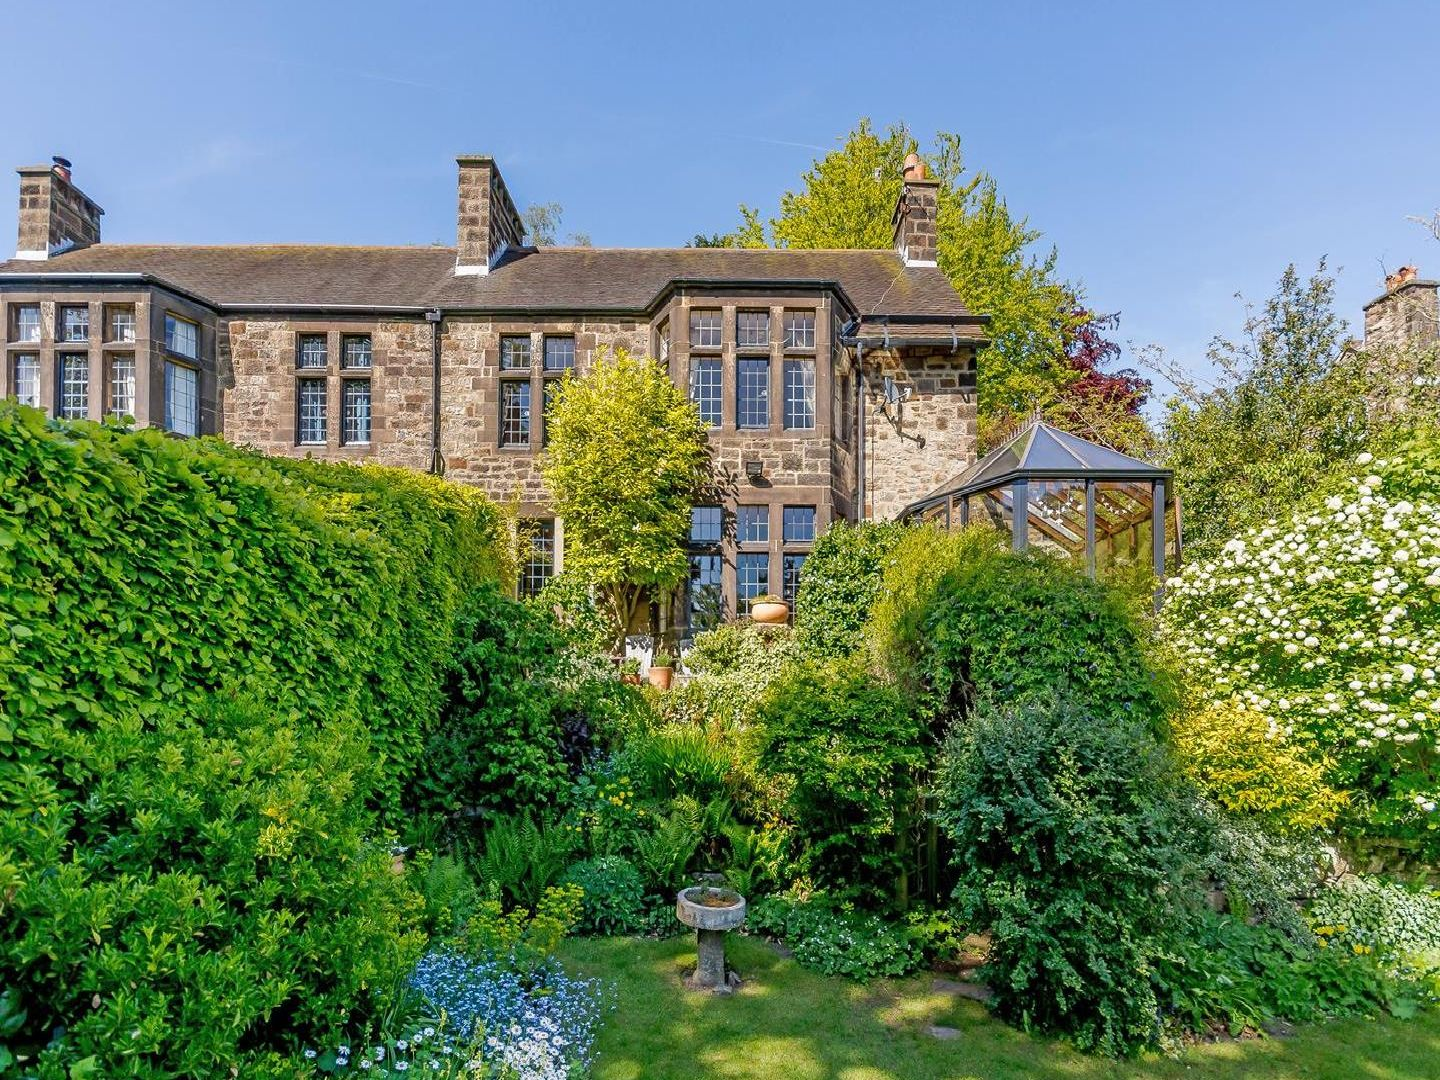 The property is on Cavendish Road in Matlock.